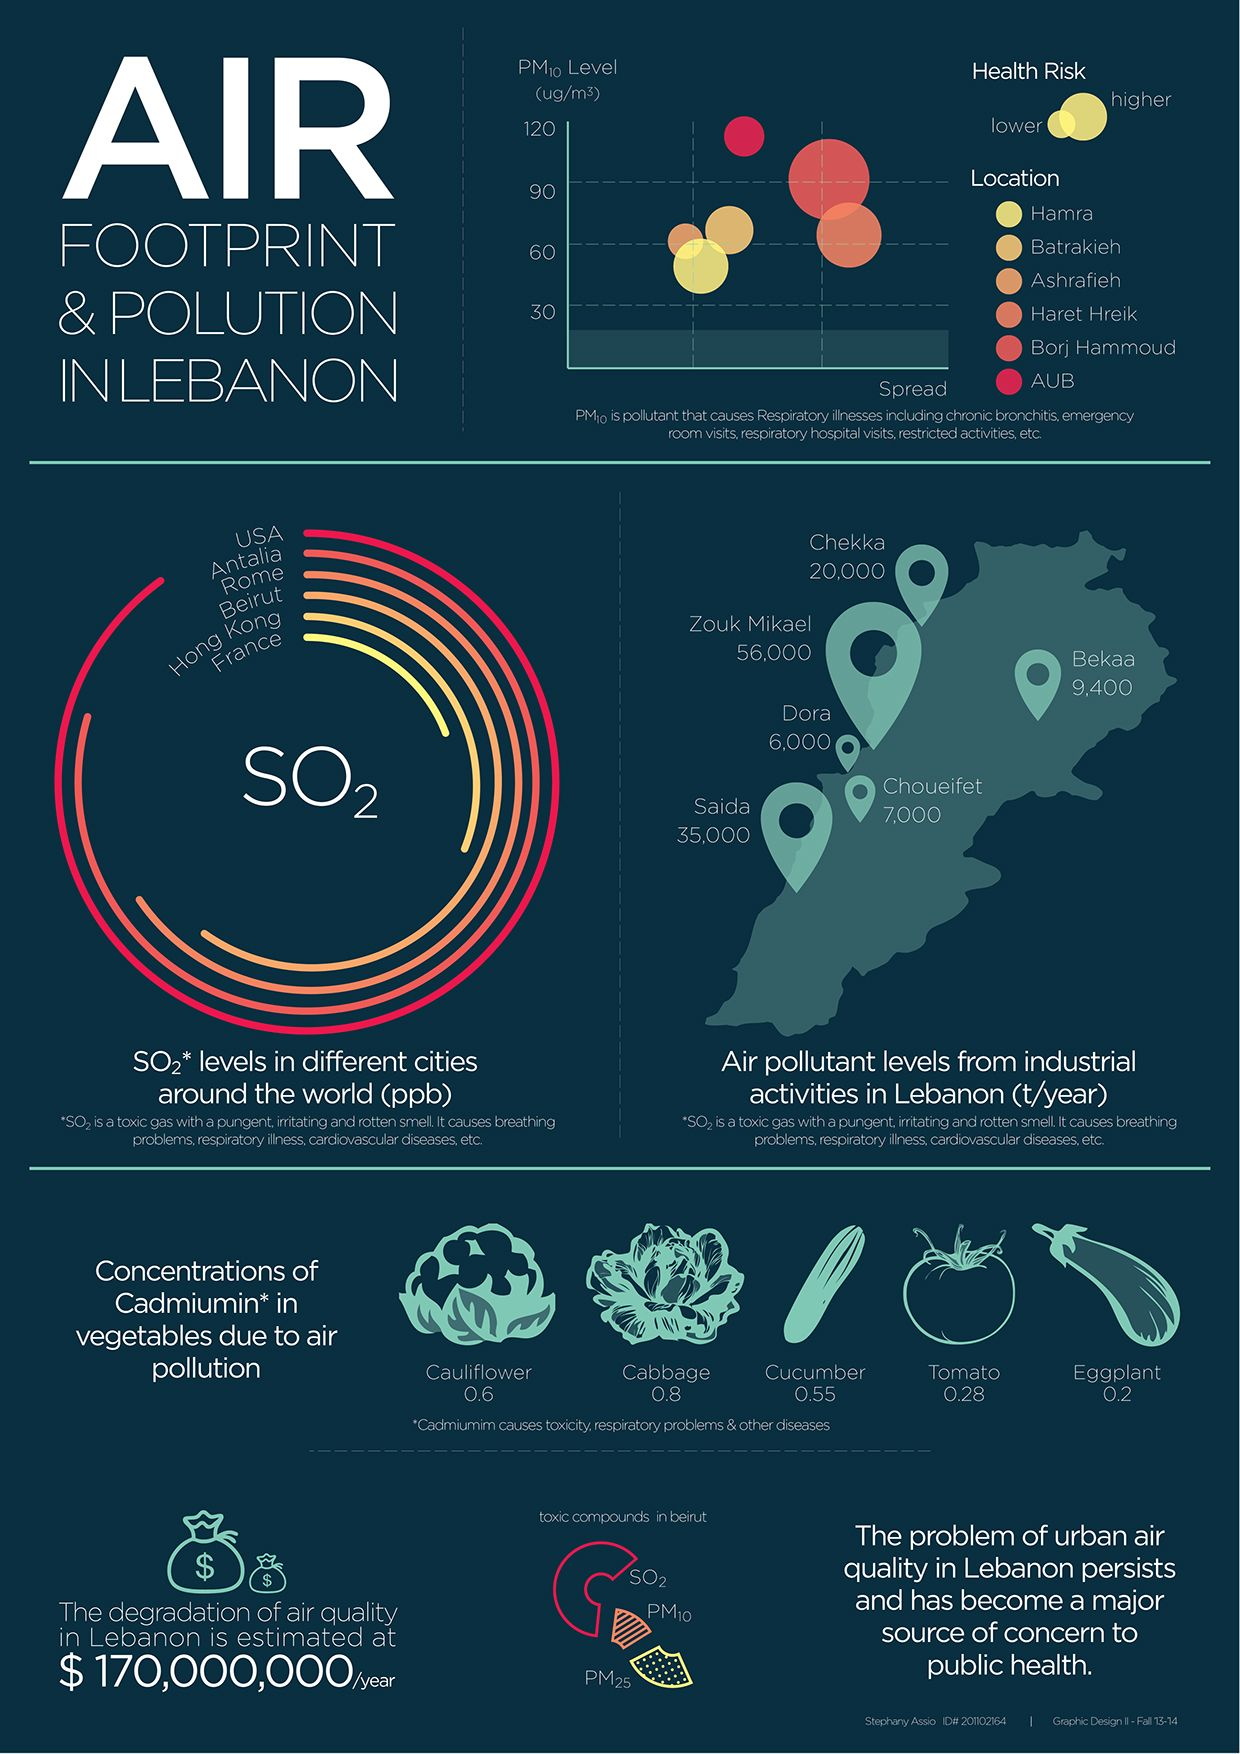 air pollution in lebanon infographic poster graphic design